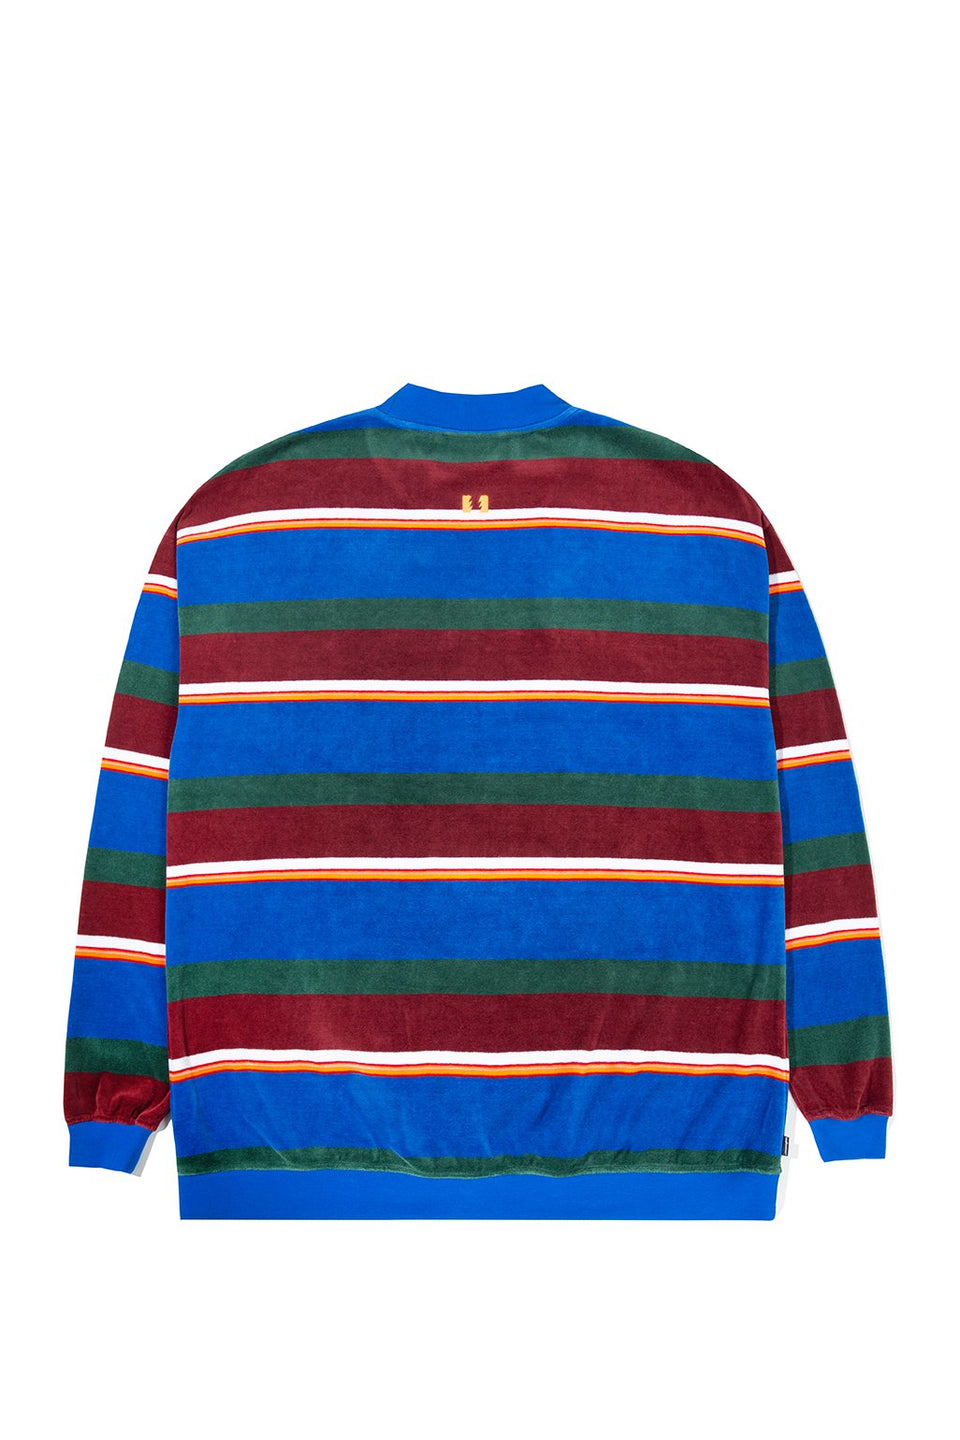 The Hundreds Peck Crewneck TOPS Blue